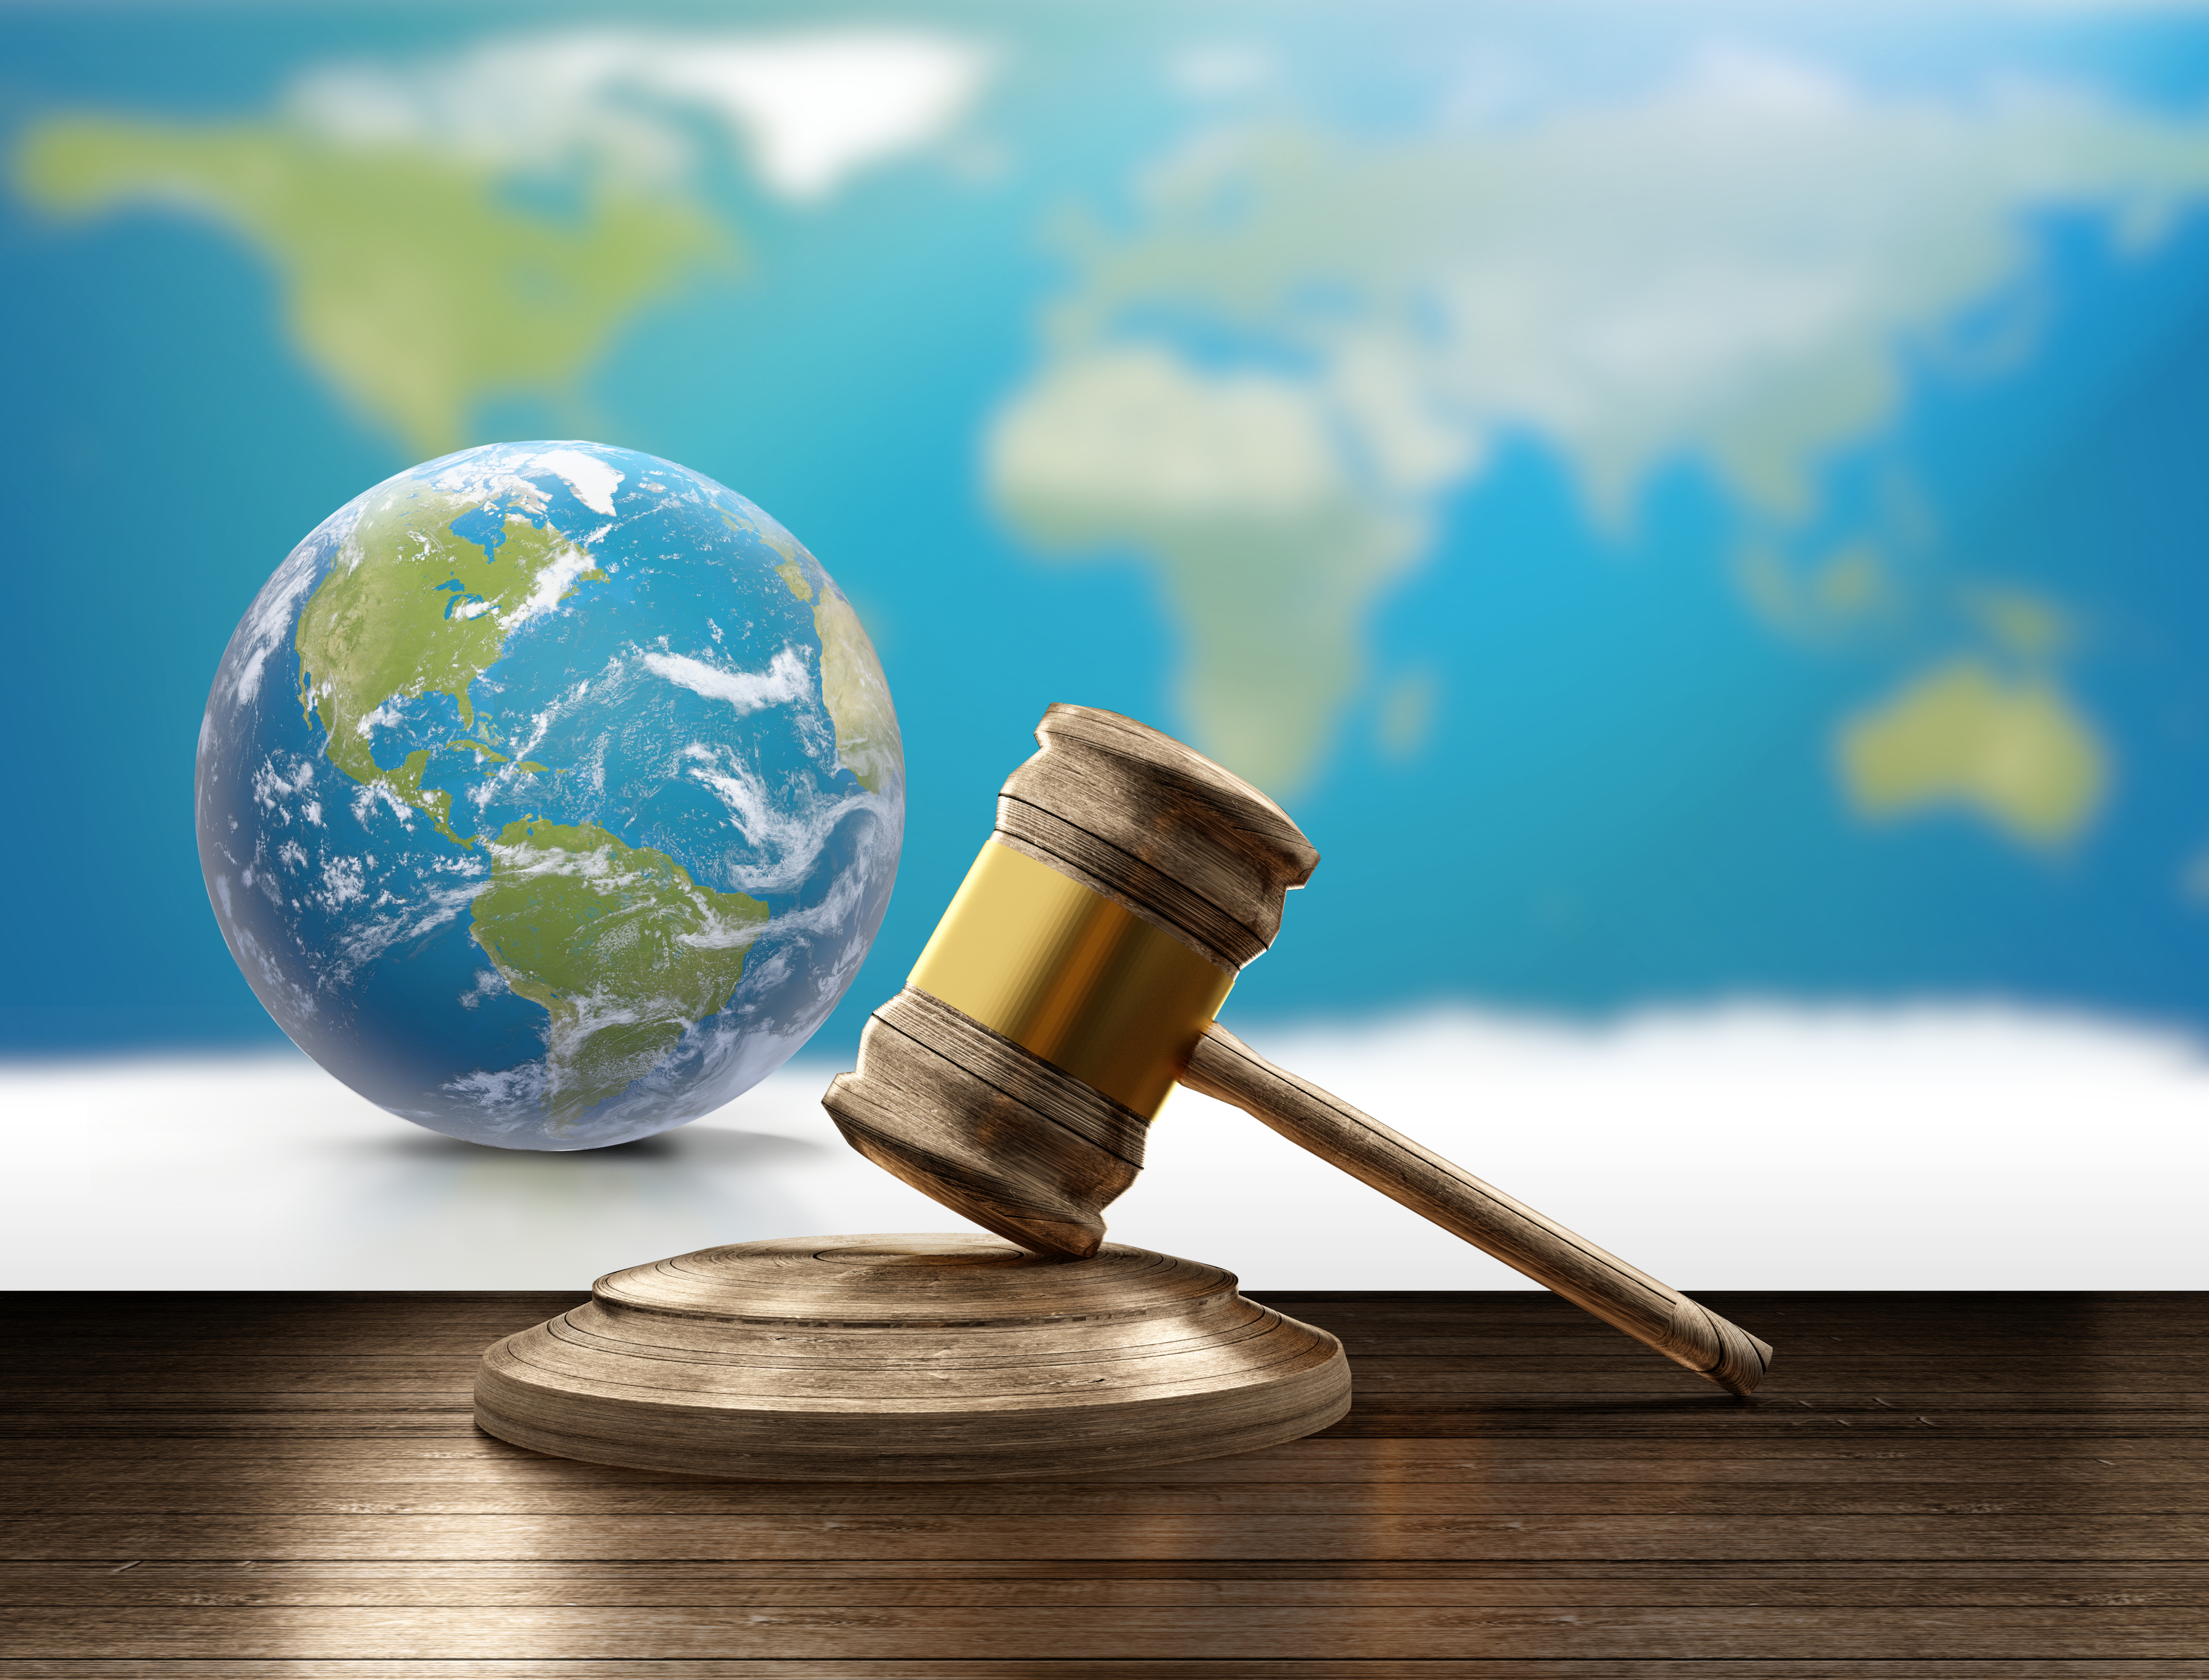 World Map Planet Earth Globe And Wooden Judge Gavel 3d Illustration